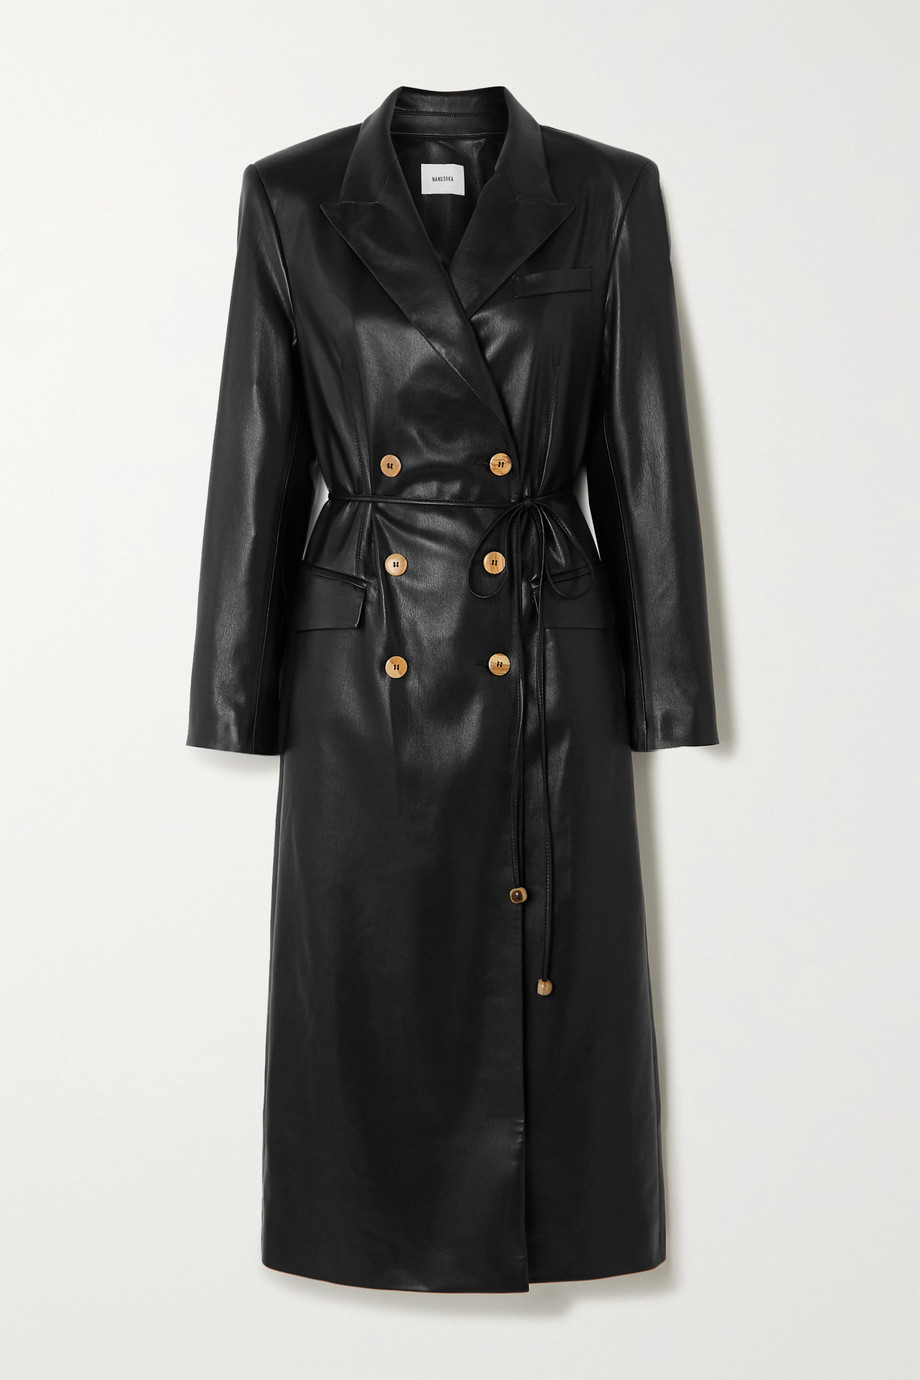 Nanushka Malina belted vegan leather trench coat